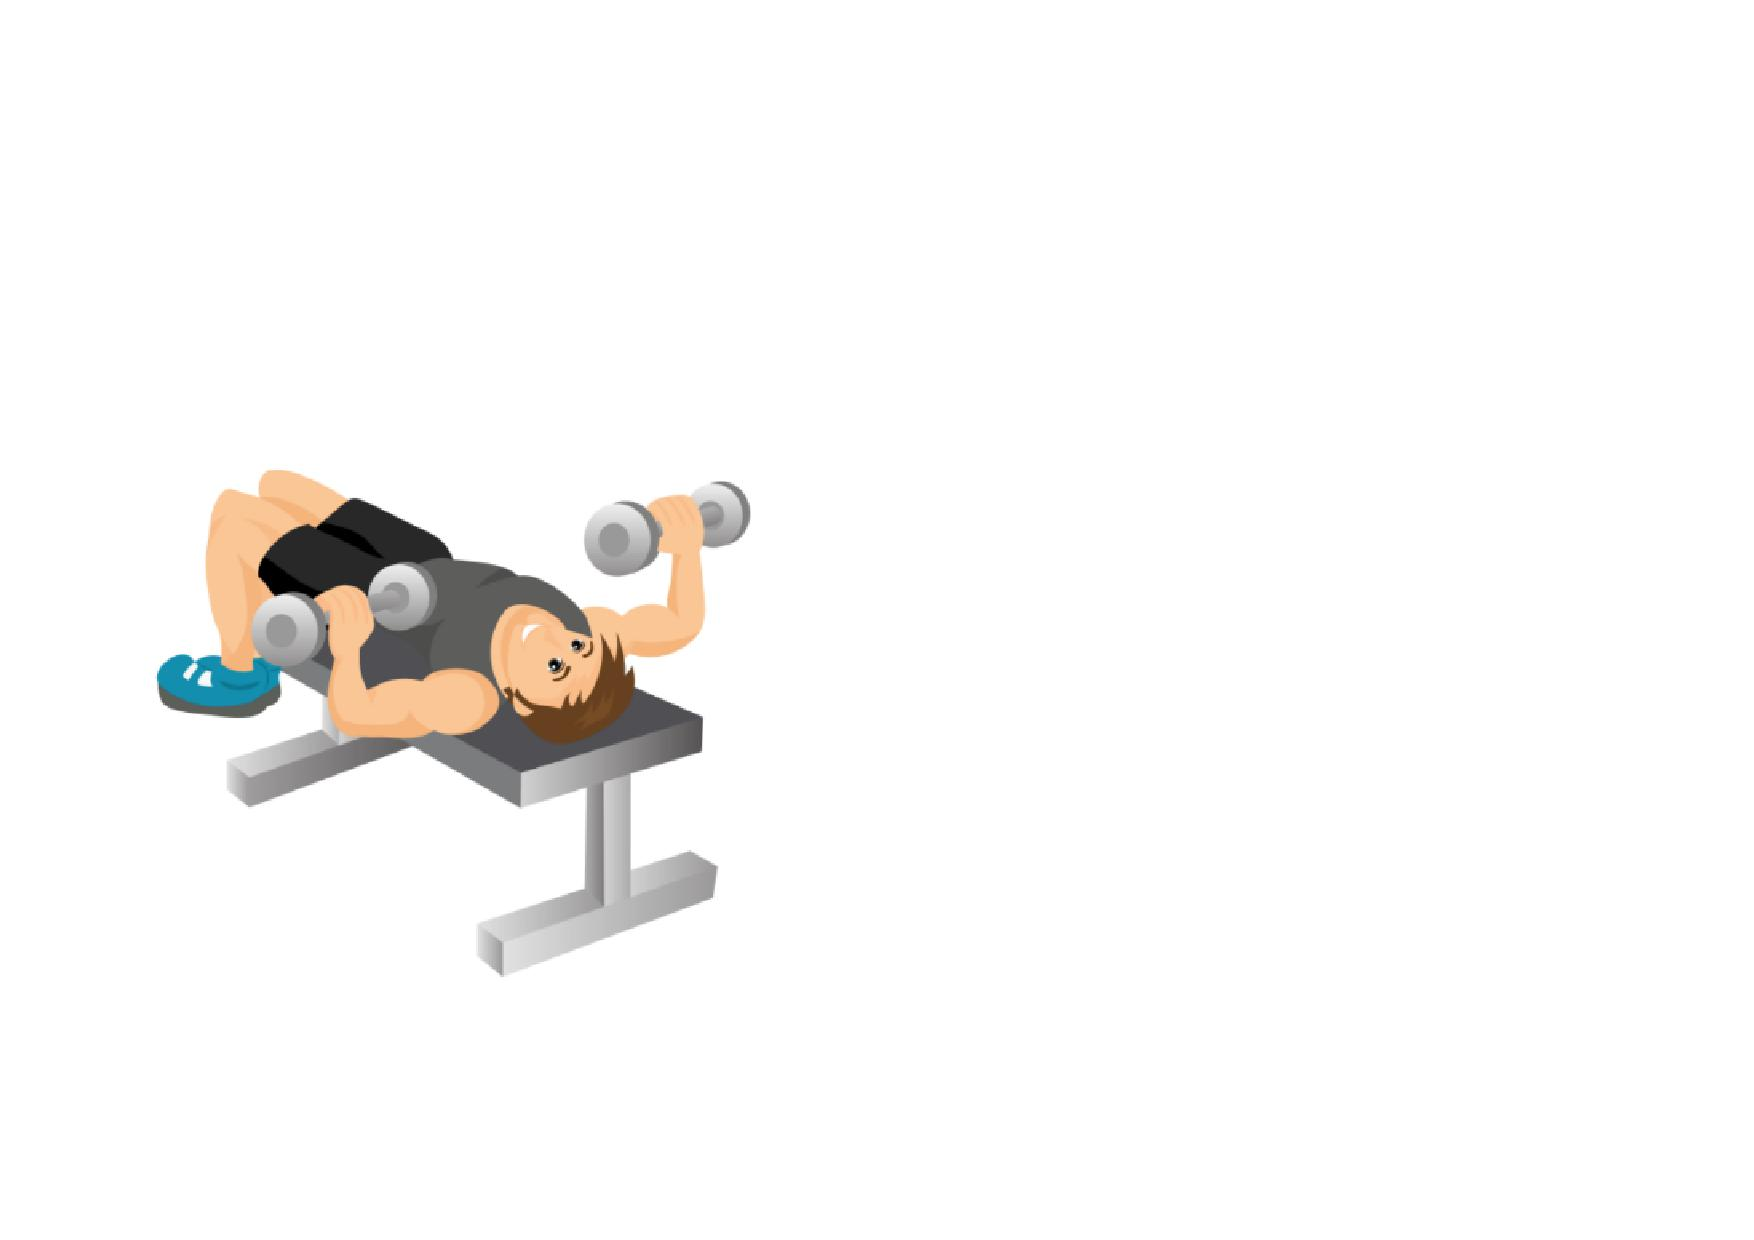 Dumbbell clipart arm workout. Gym fitness full page